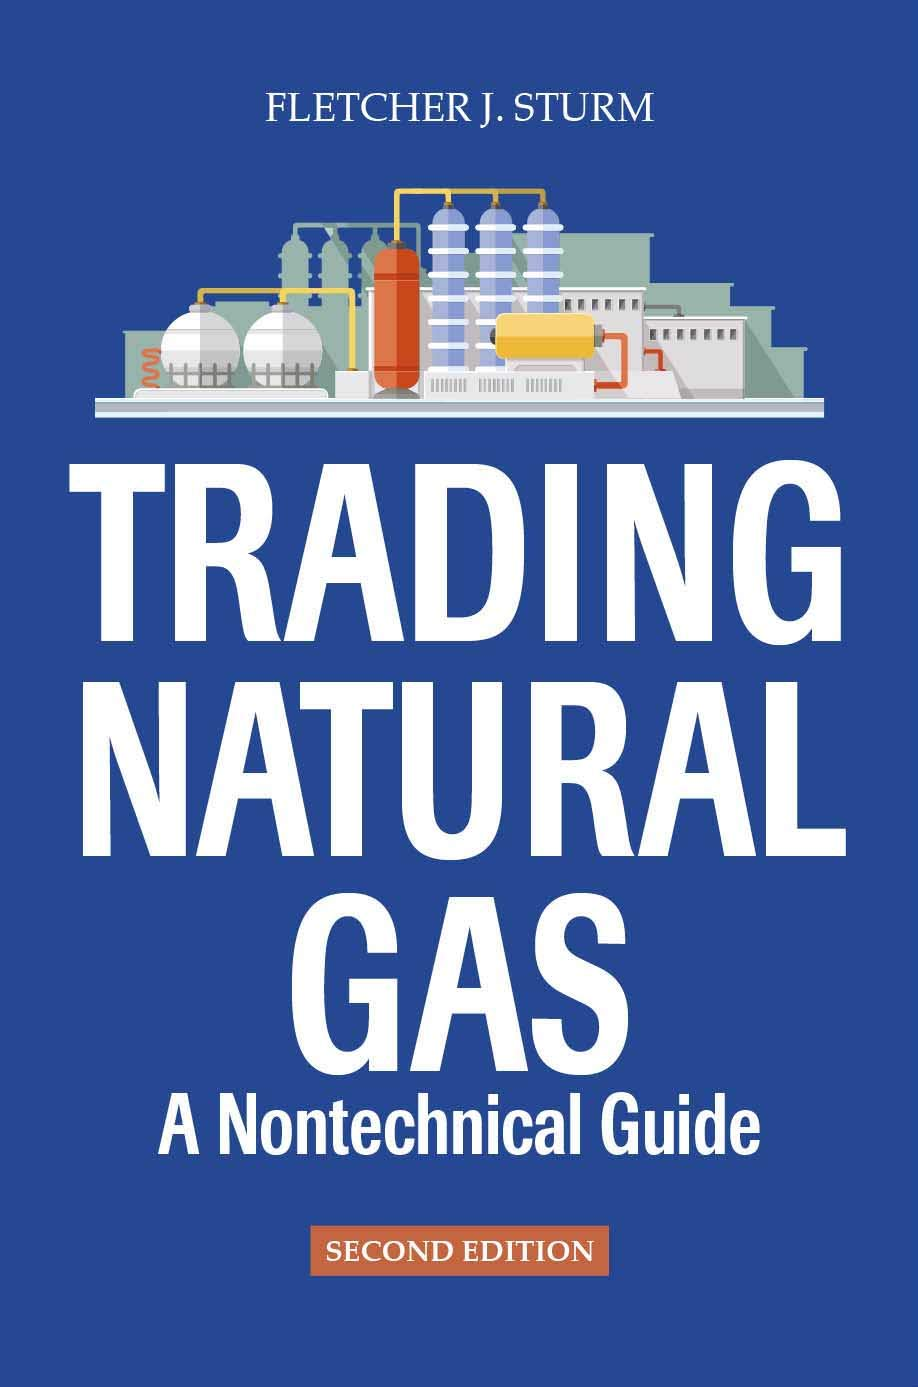 Trading Natural Gas: A Nontechnical Guide, 2nd Edition